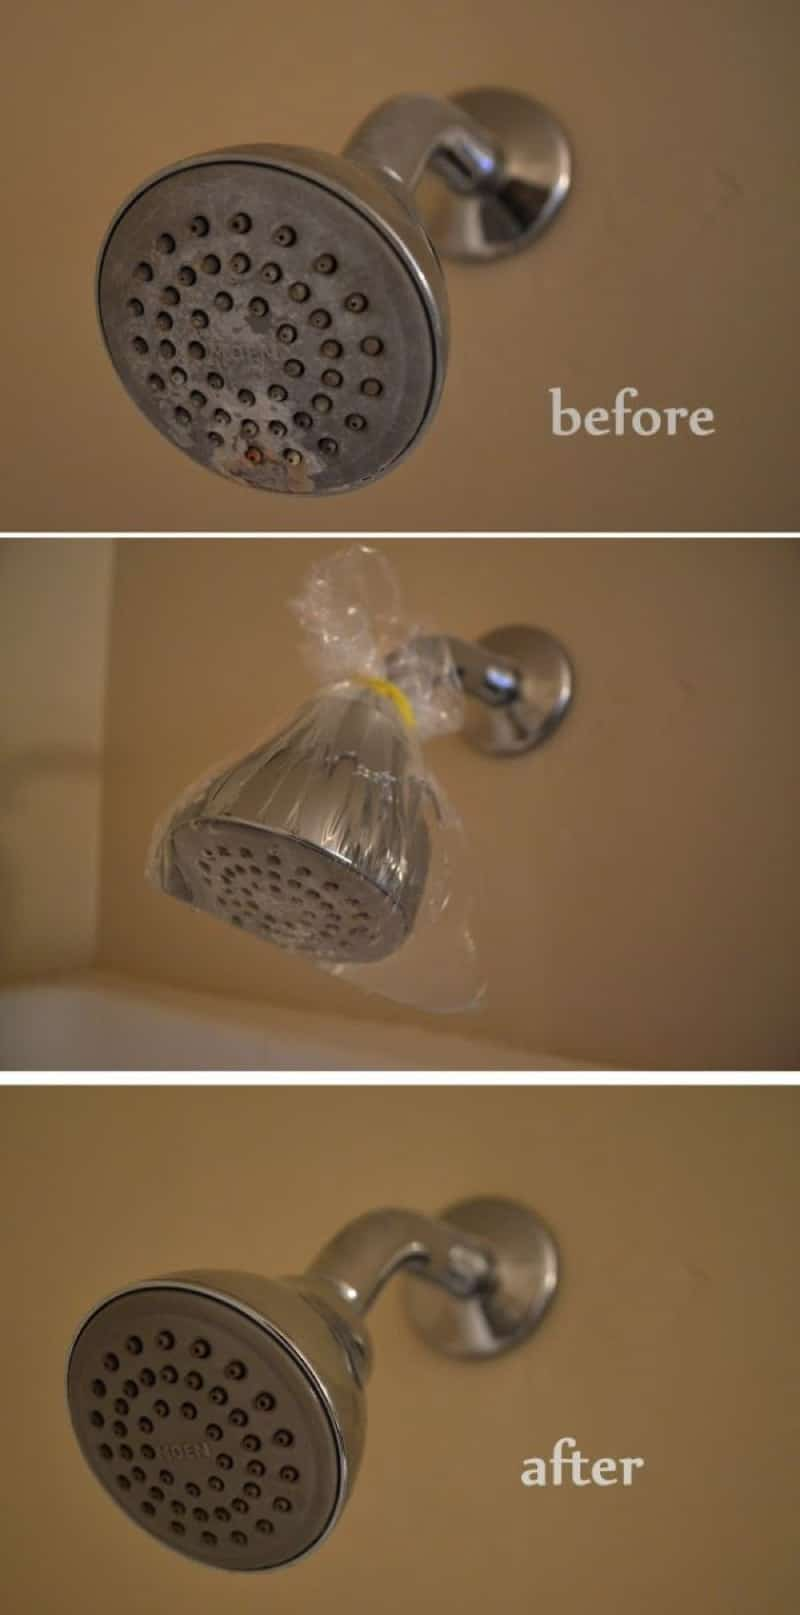 clean shower head 800 min - 23 DIY Ideas To Clean Up Your Home